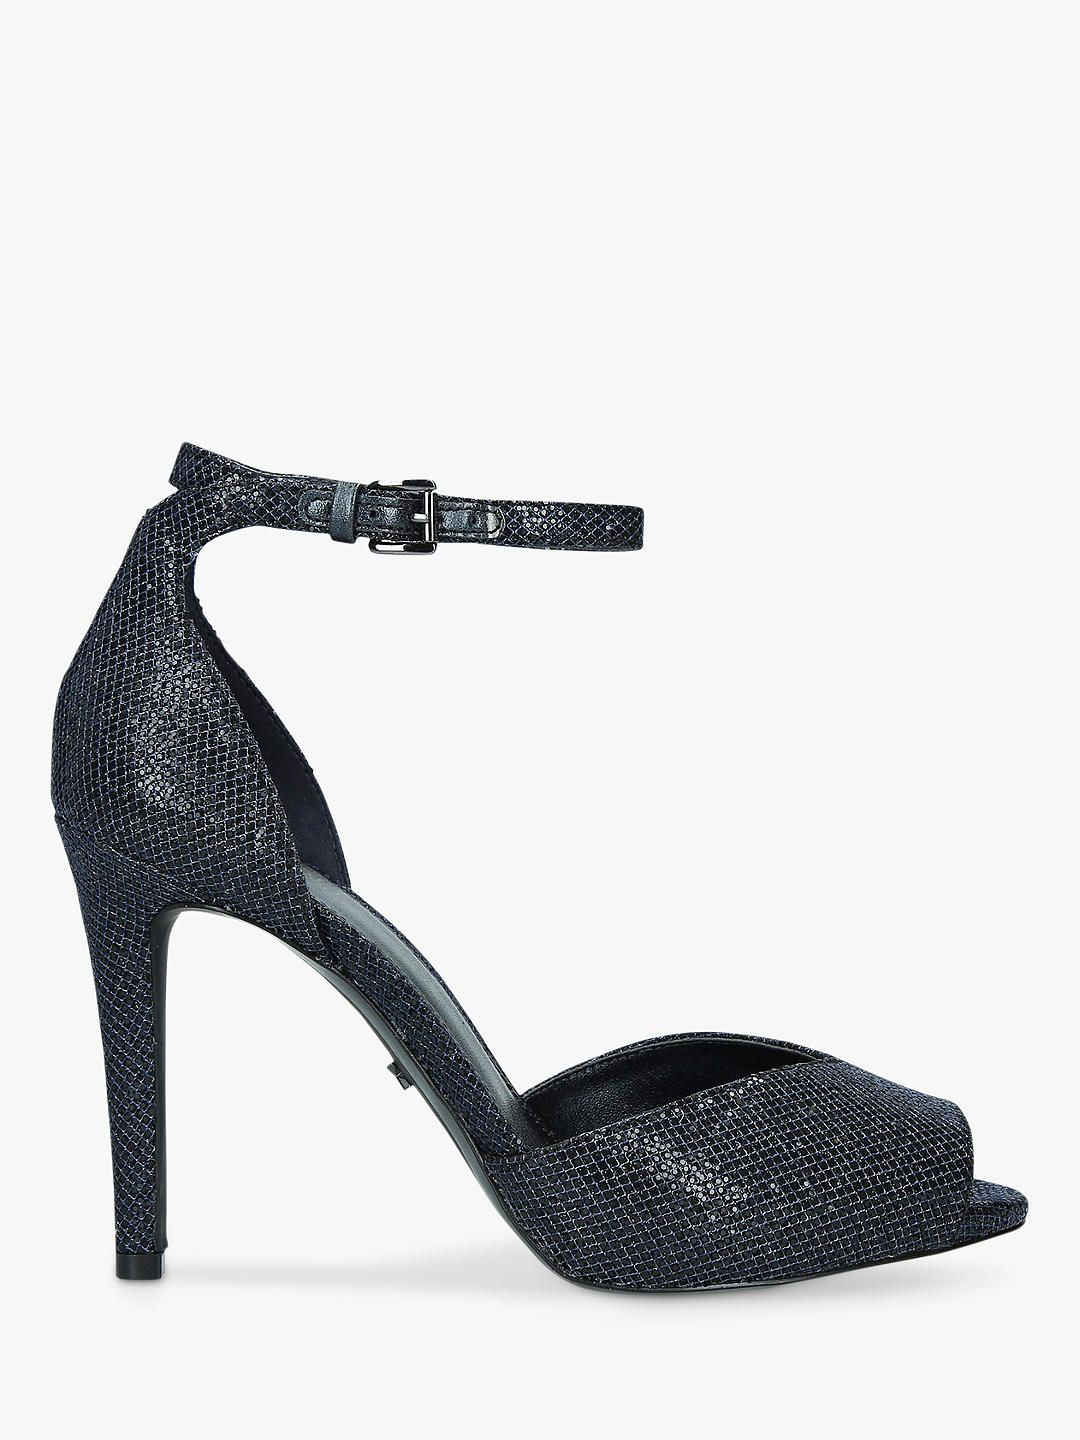 MORRELL Platform High Heel Sandal black | Dune London